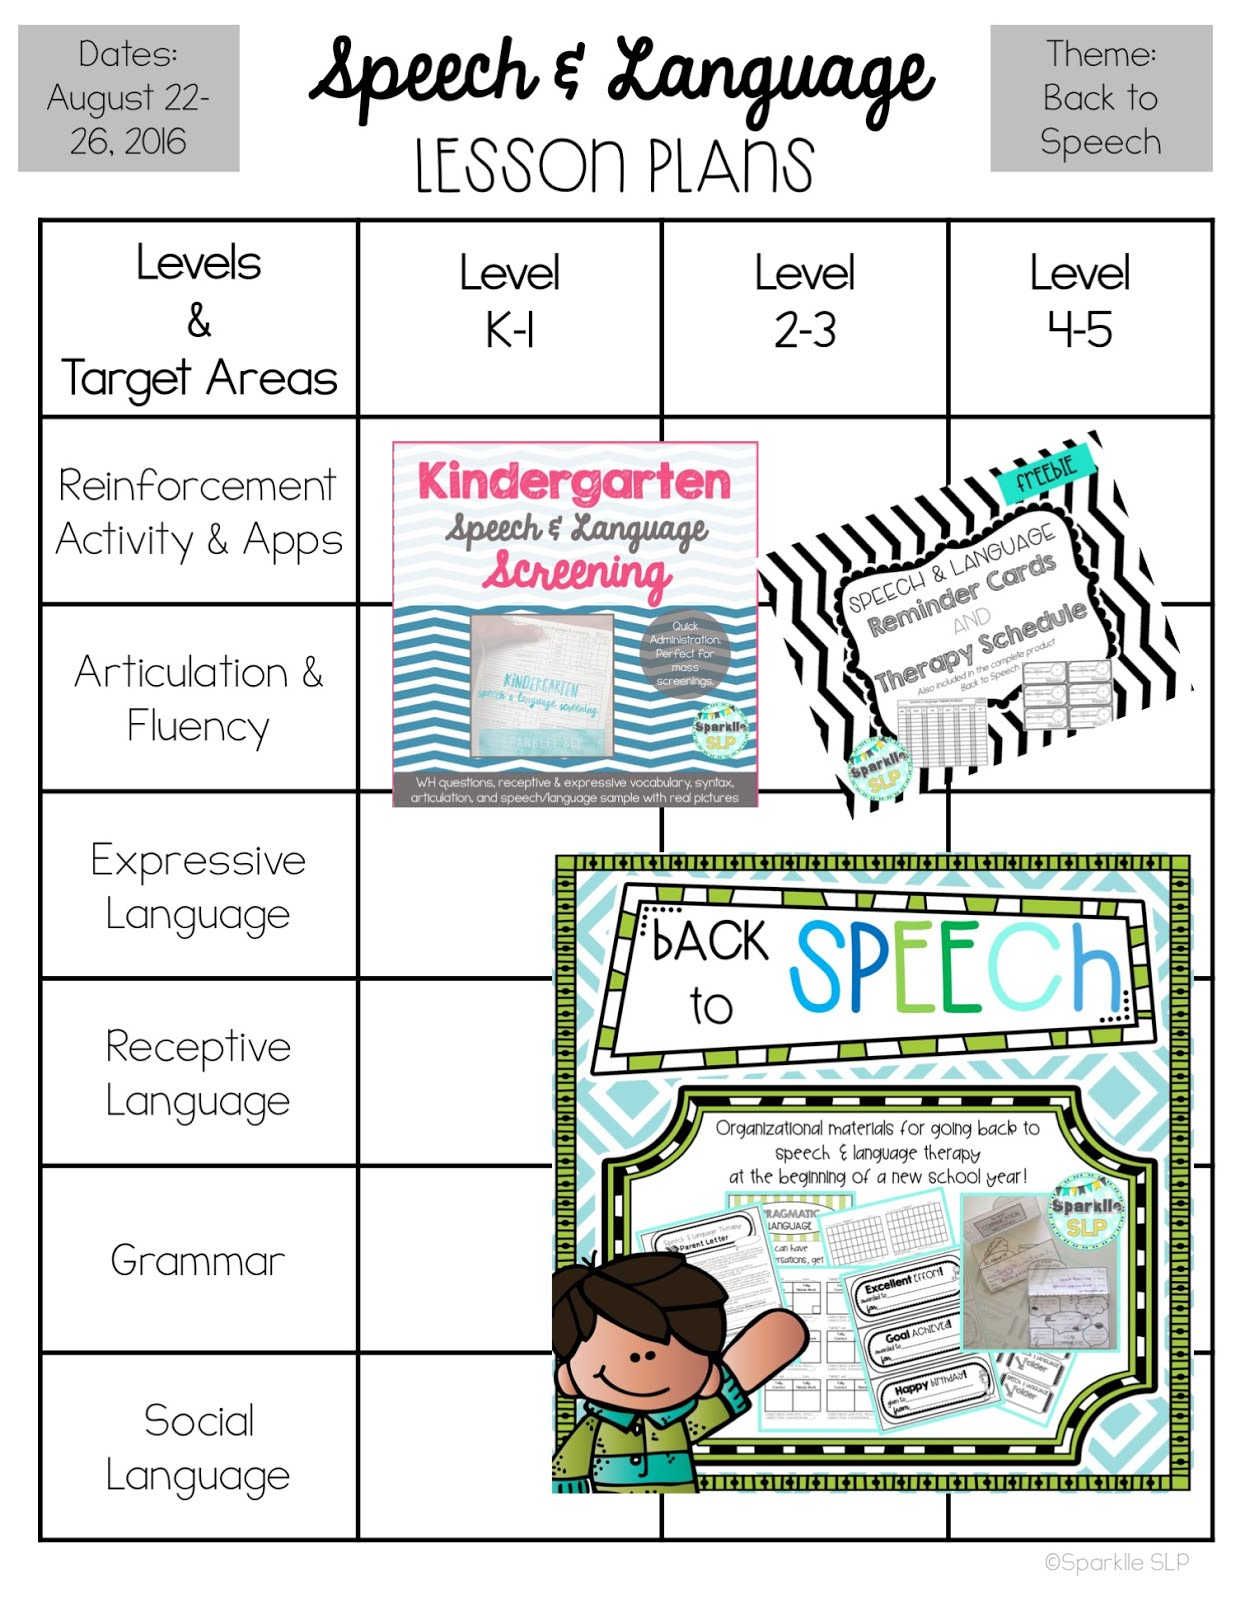 Speech and language lesson plans for august sparklle slp for My plans